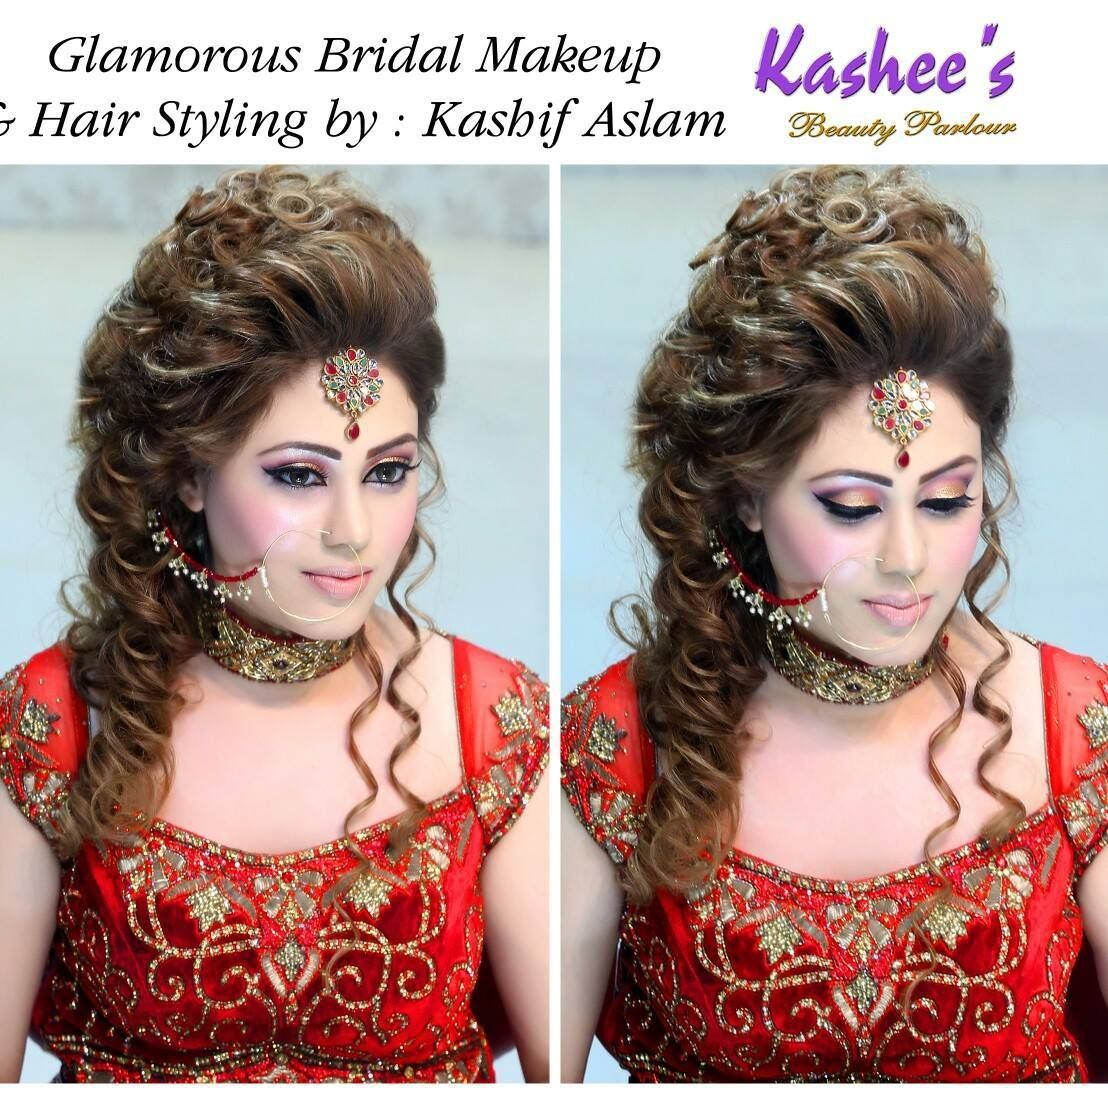 Wedding Makeup Hair Style: Glamorous Bridal Makeup And Hair Styling Done By Kashif